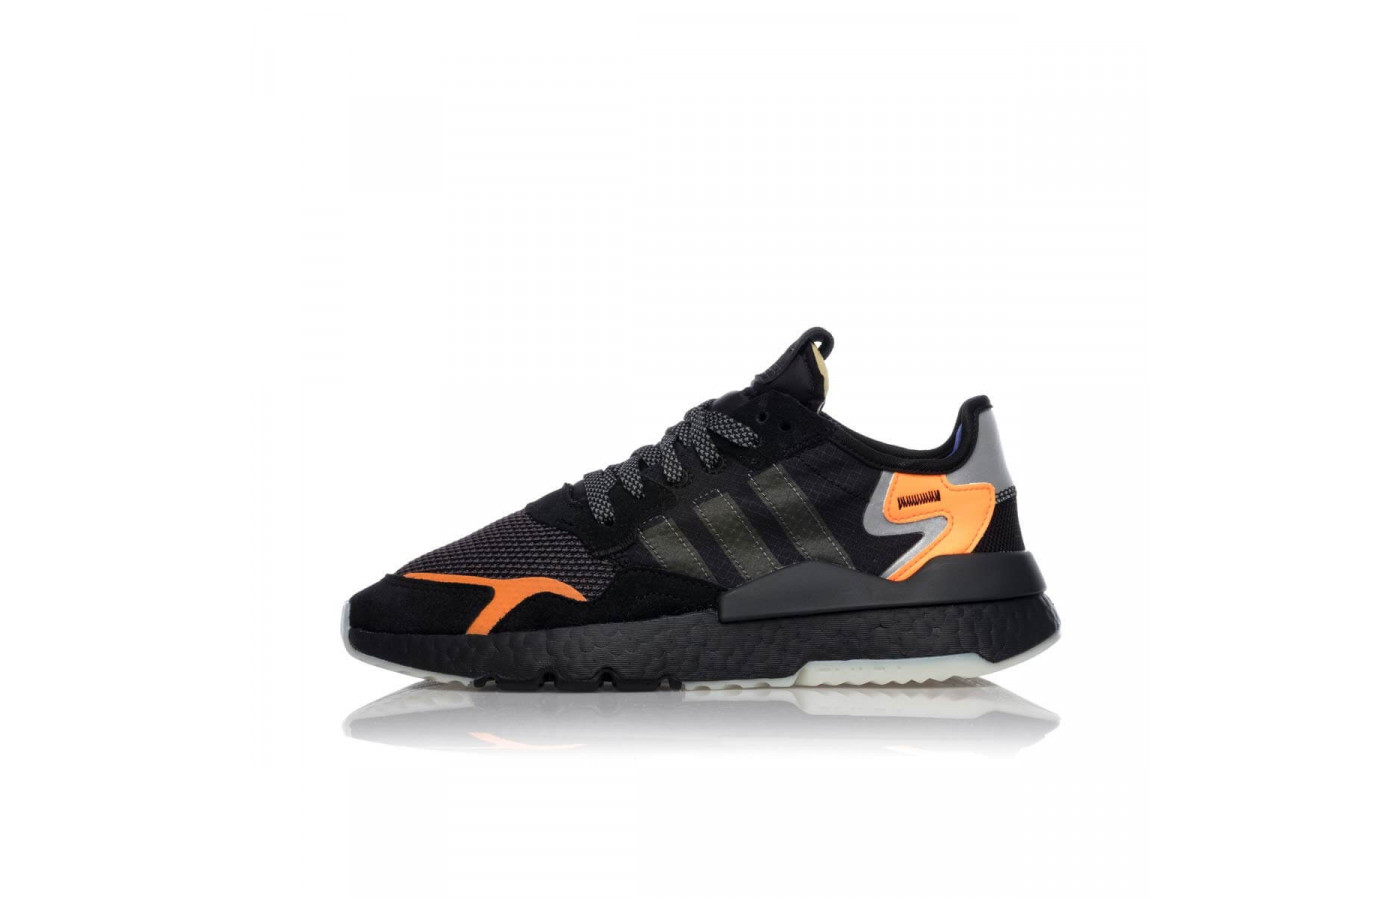 9e1ec55a22f31 Adidas Nite Jogger Reviewed - To Buy or Not in May 2019